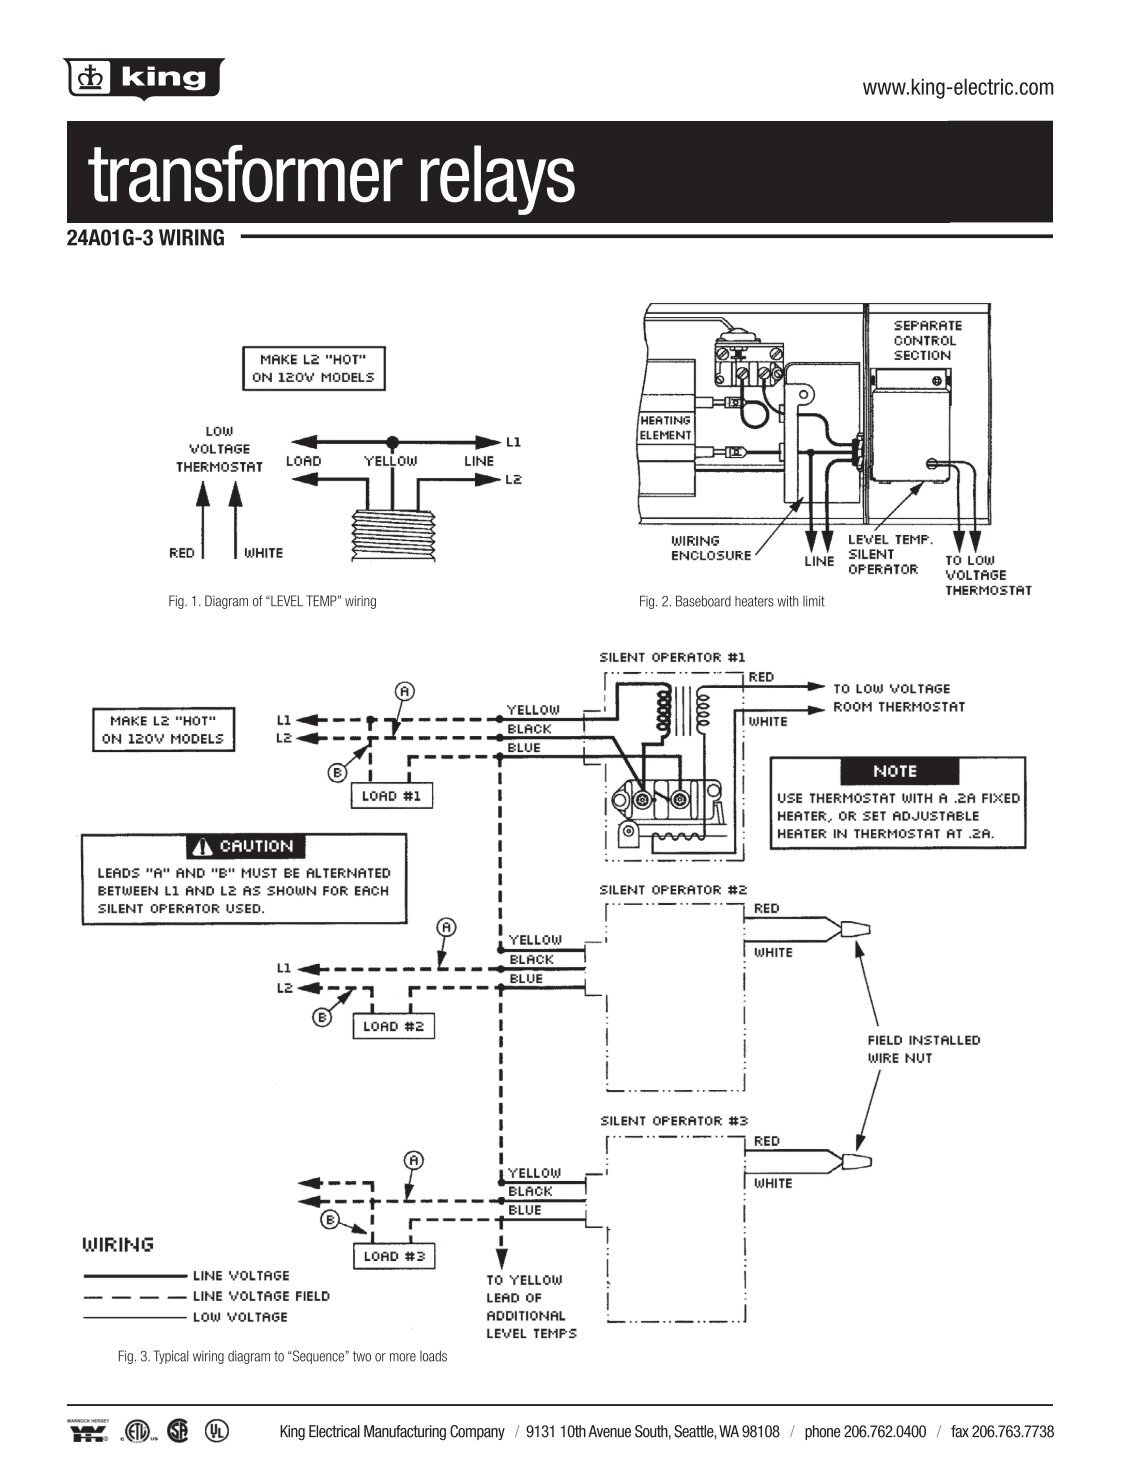 Unique Tp 100 Wiring Diagram Pattern - Schematic diagram and wiring ...